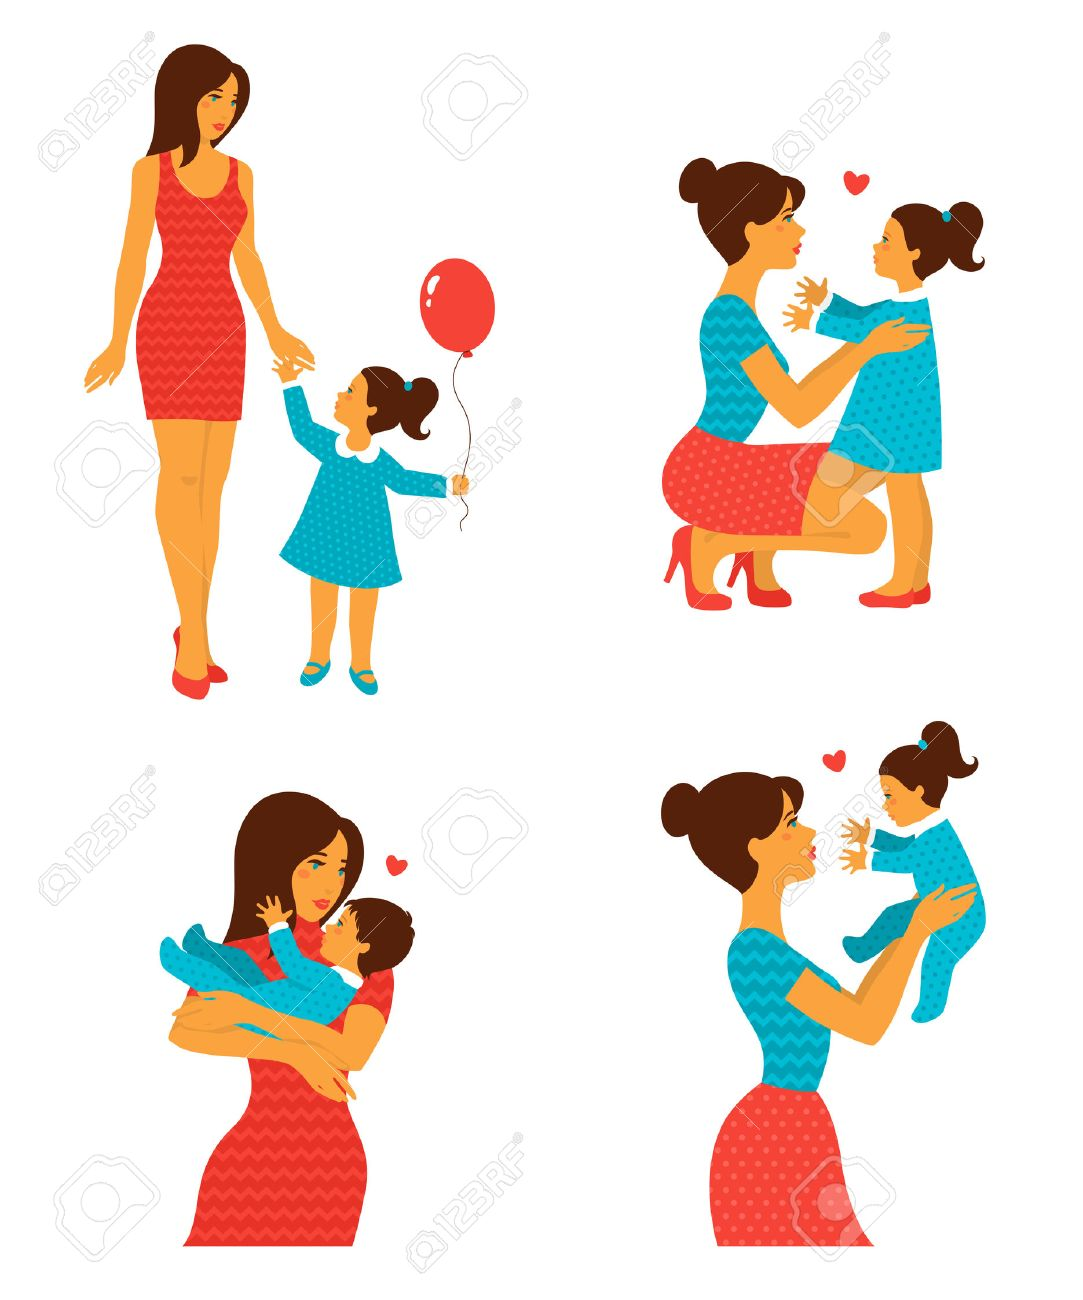 Happy cheerful family  Vector illustration  Mother and baby laughing